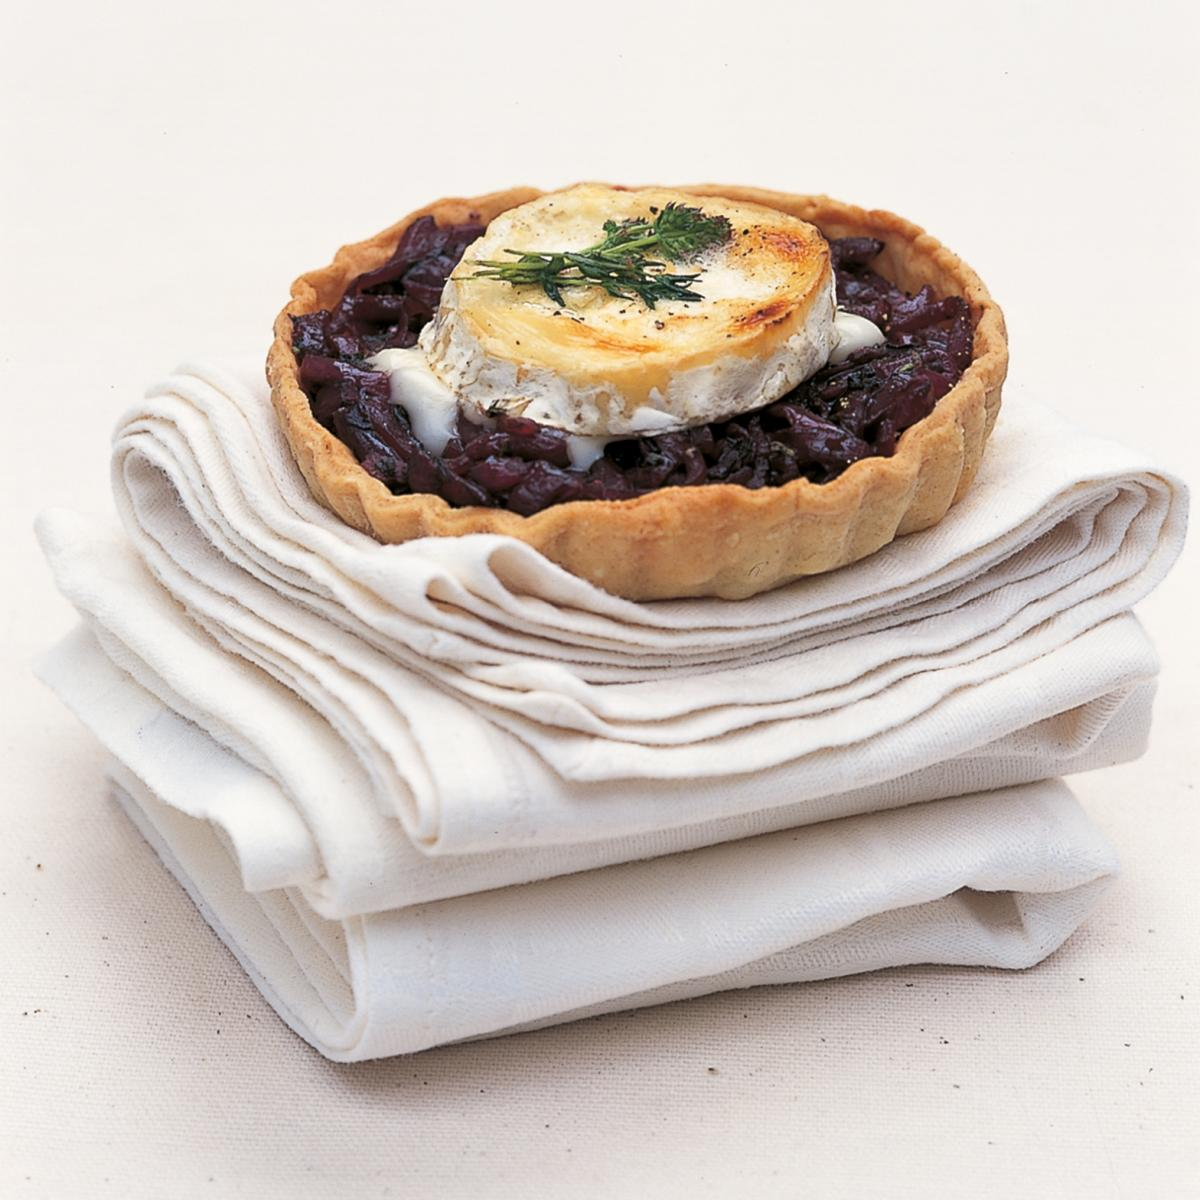 Htc caramelised balsamic and red onion tarts wtih goats cheese